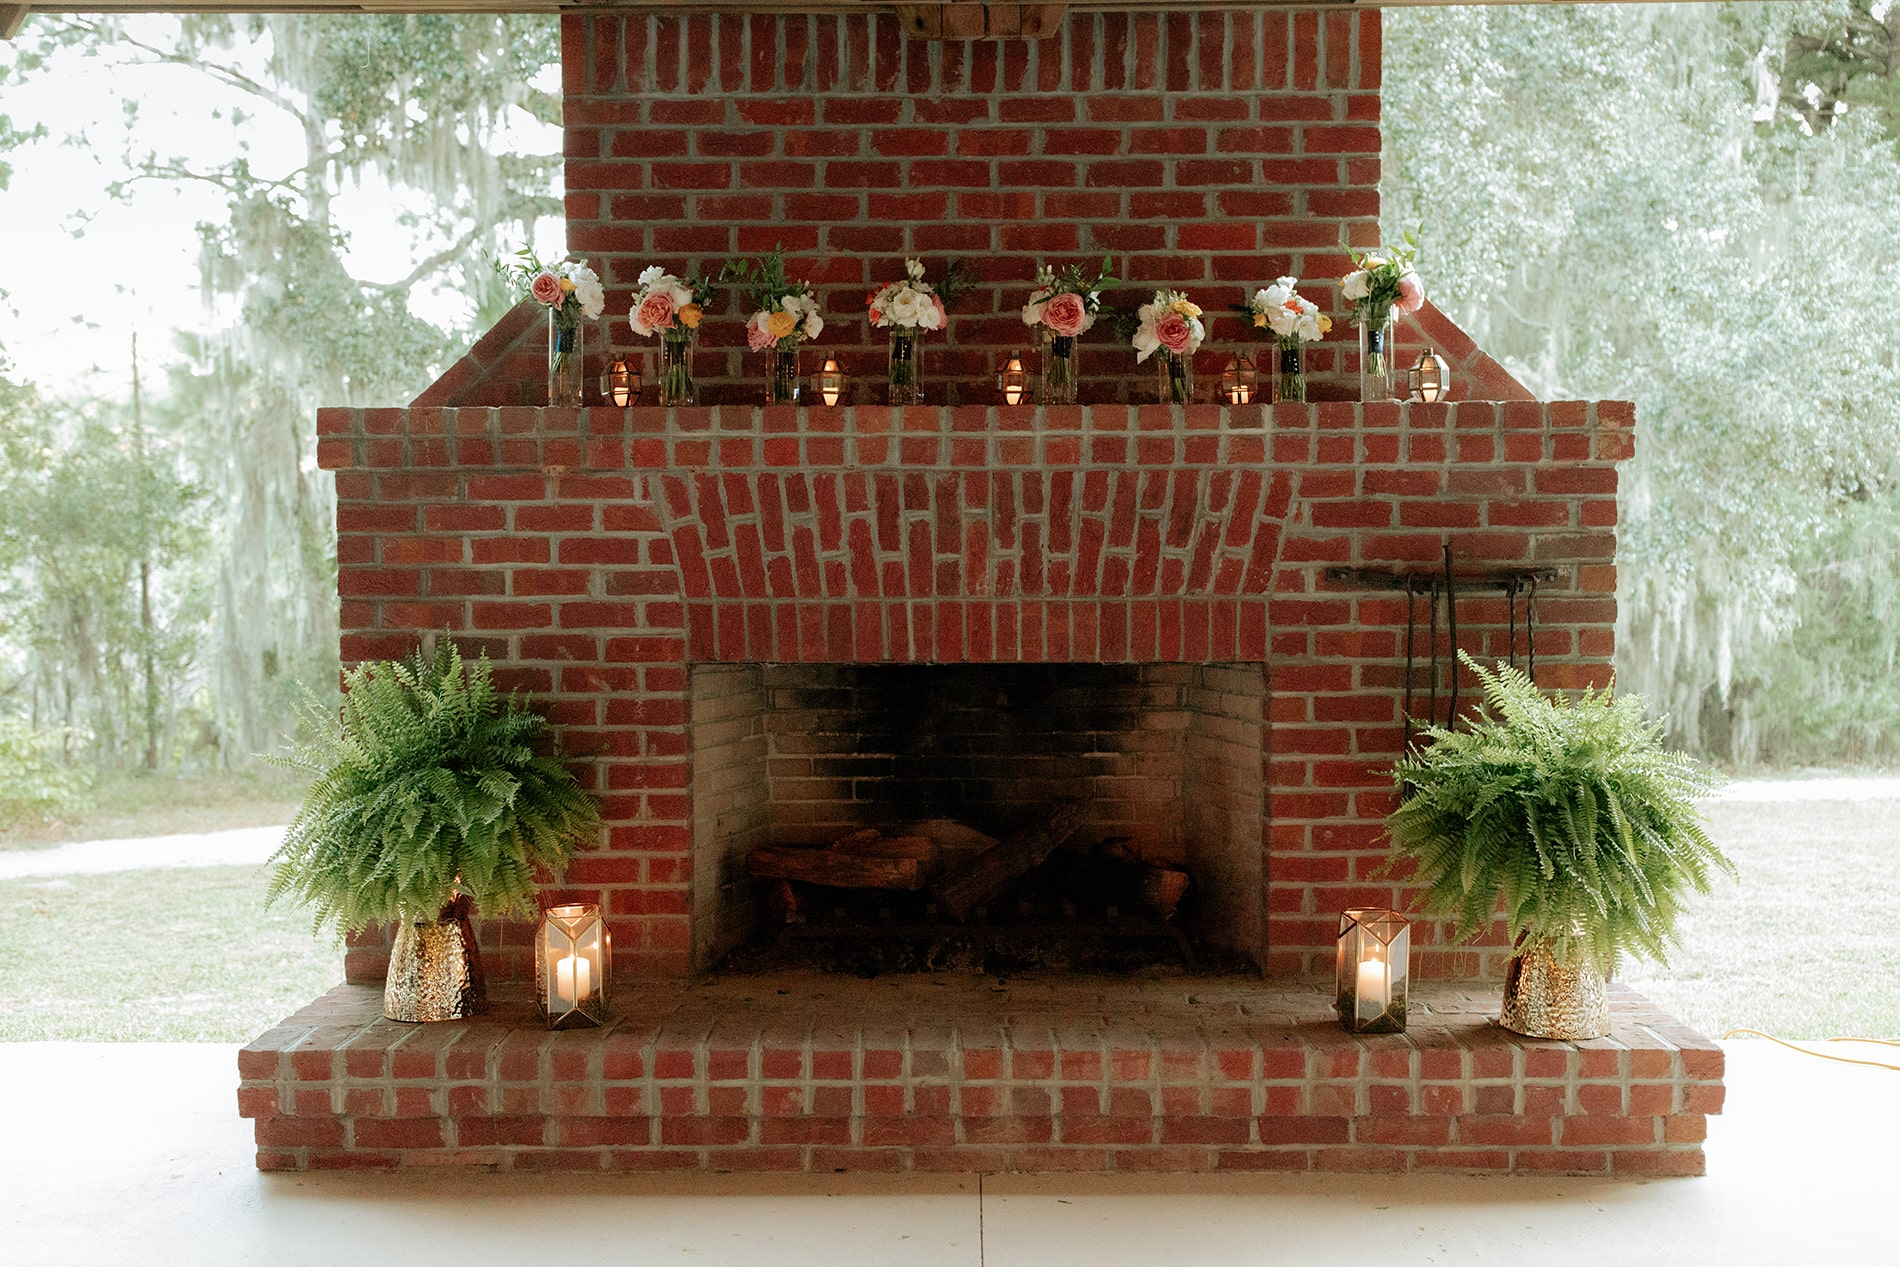 lowcountry-kitchen-catering-beaufort-sc-mary-grace-and-judd-kennedy-wedding-ceremony-outdoor-fireplace-min.jpg